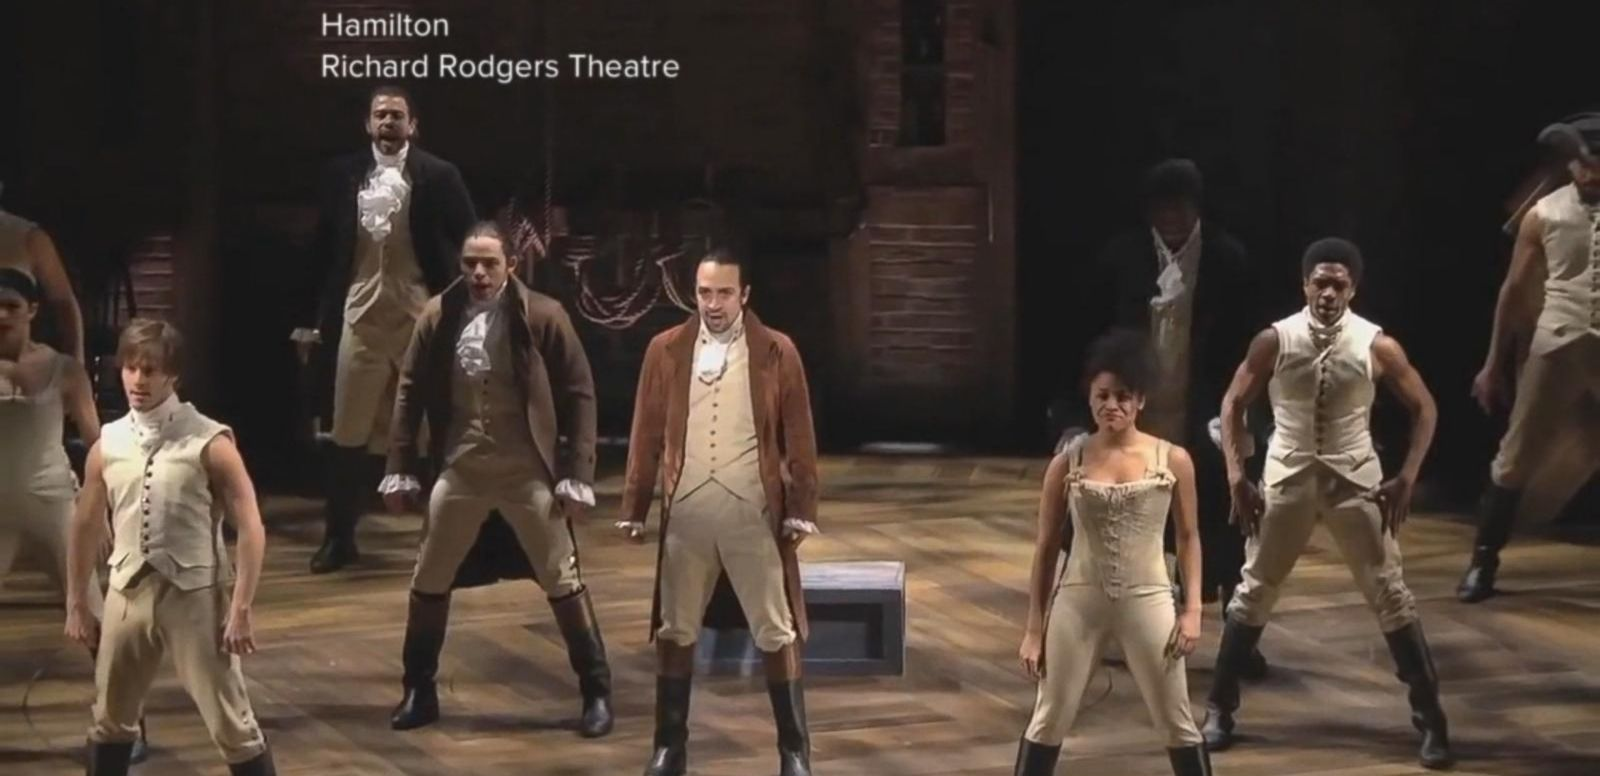 VIDEO: Thousands Audition for Broadway Hit 'Hamilton'